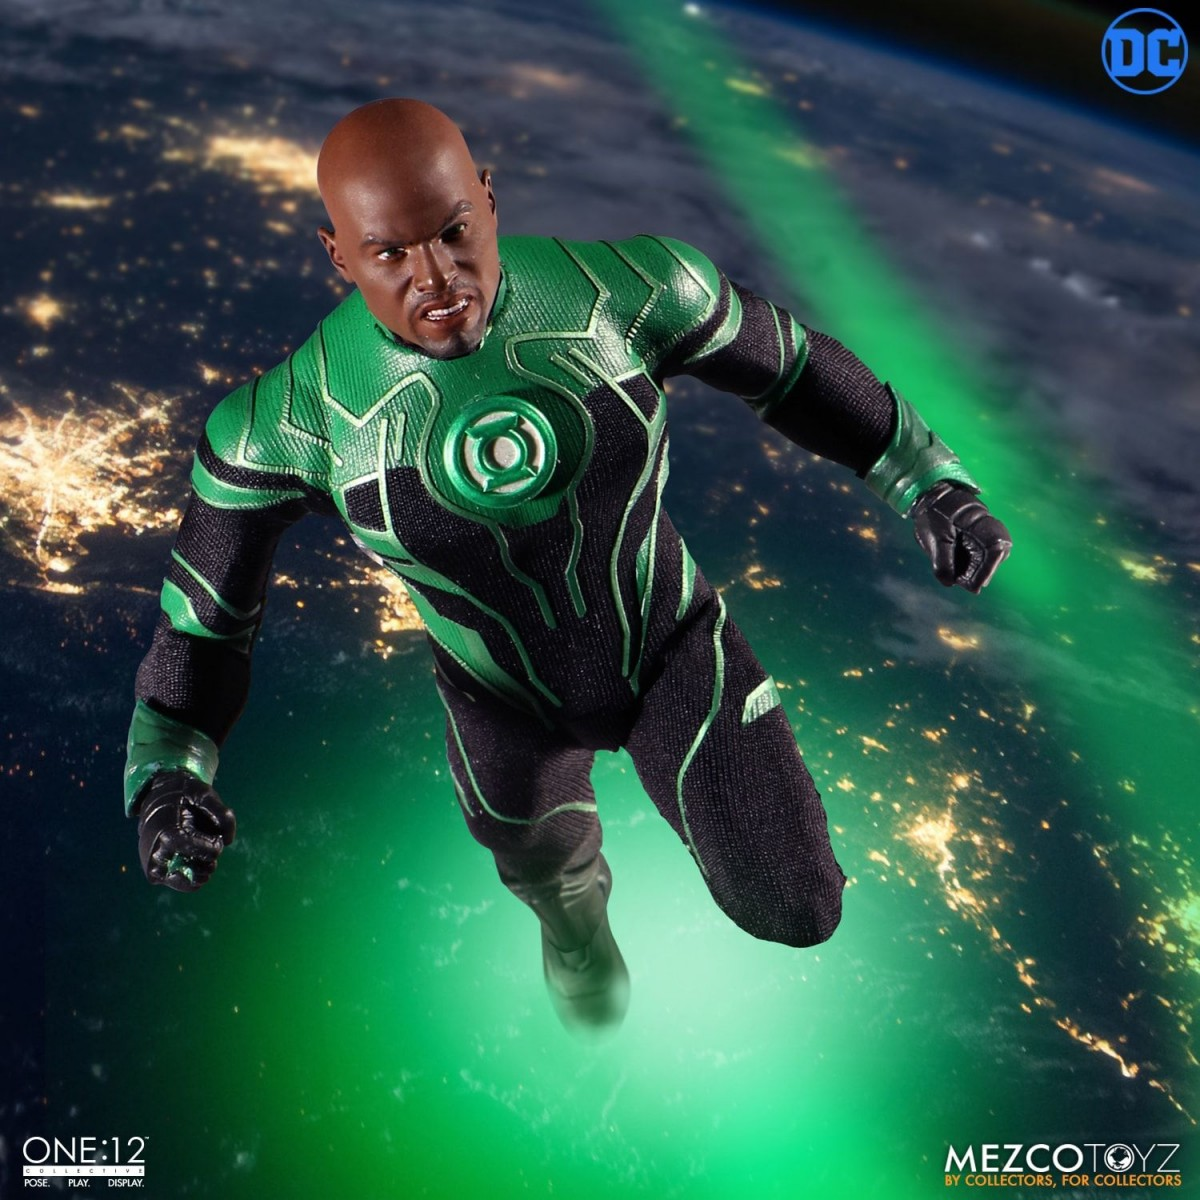 Mezco Toyz ONE12 COLLECTIVE John Stewart Green Lantern